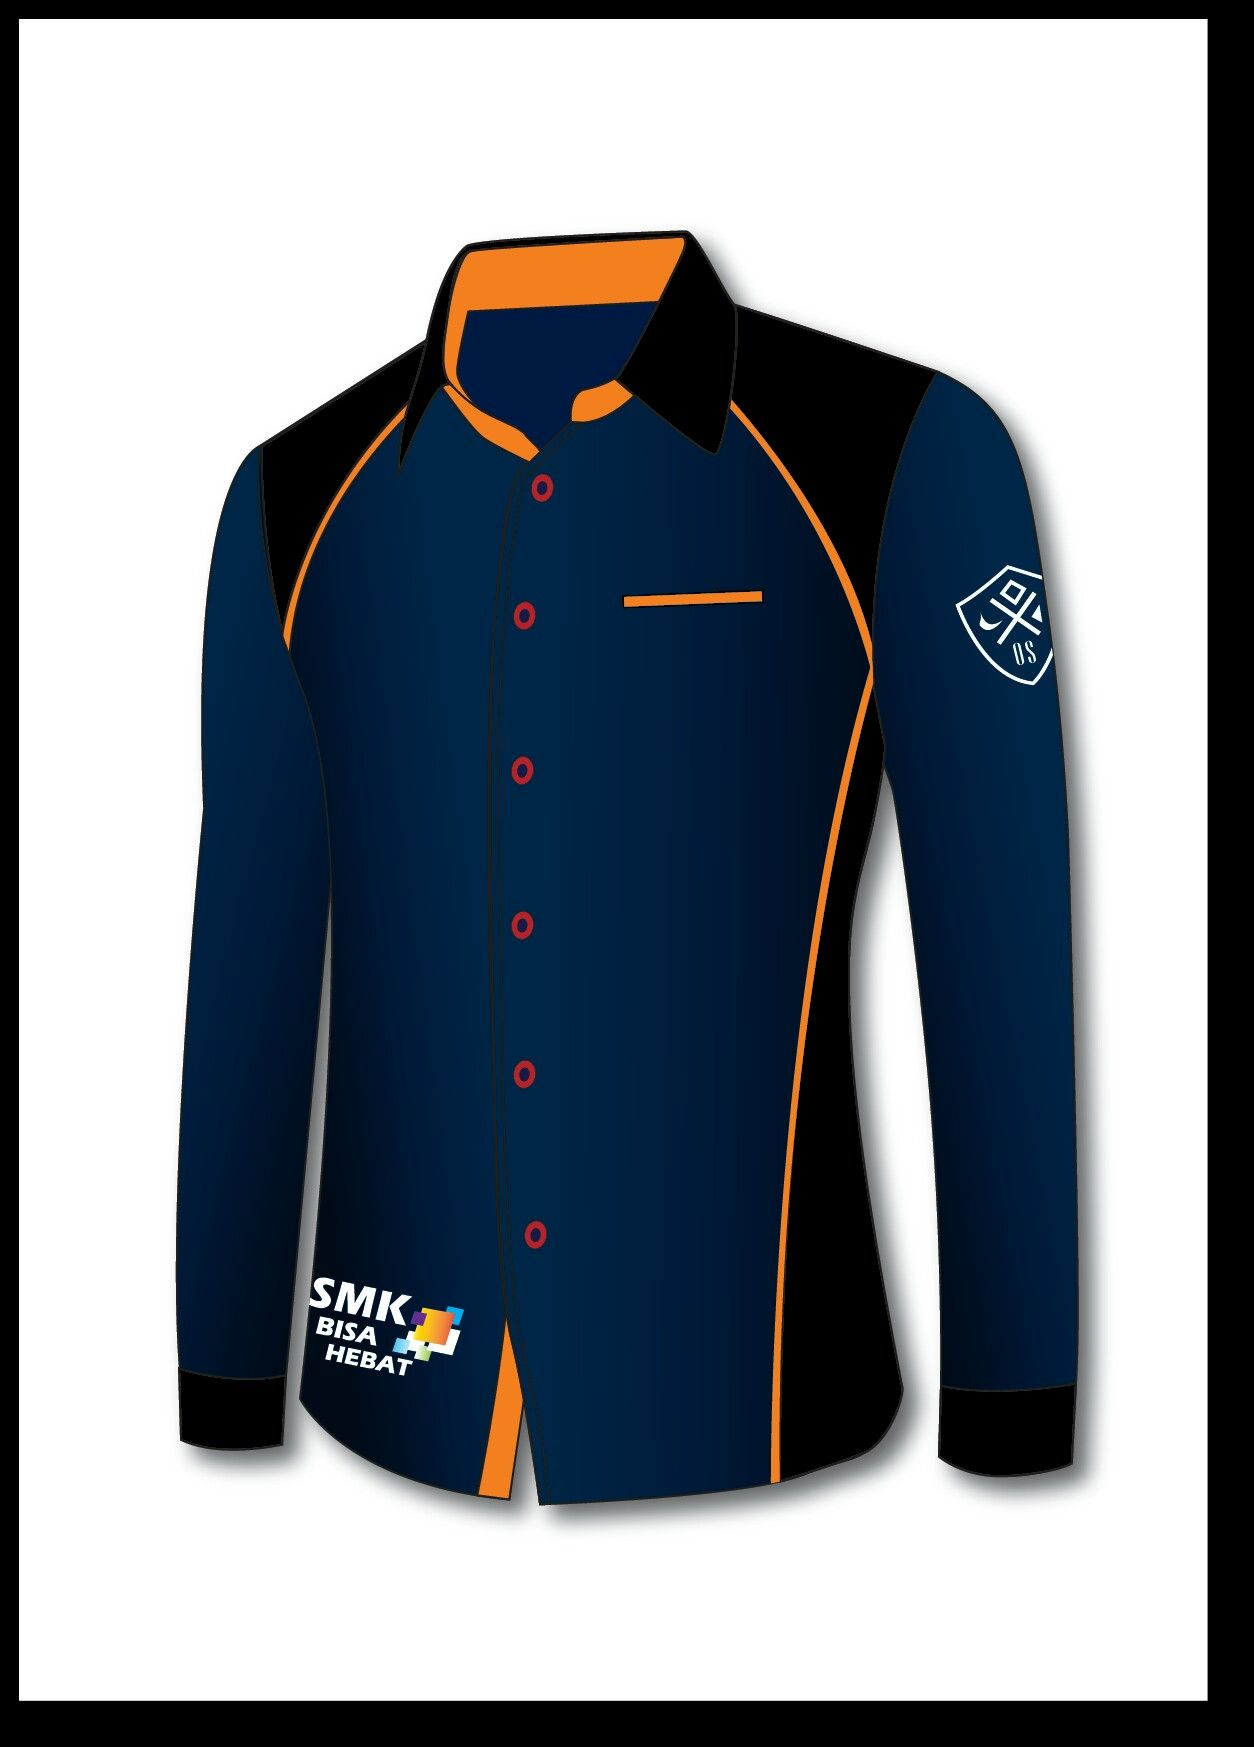 5fe1cf9b0ea Pdh design Highschool student's organization uniform Sajid Khan, Mens  Designer Shirts, African Shirts,